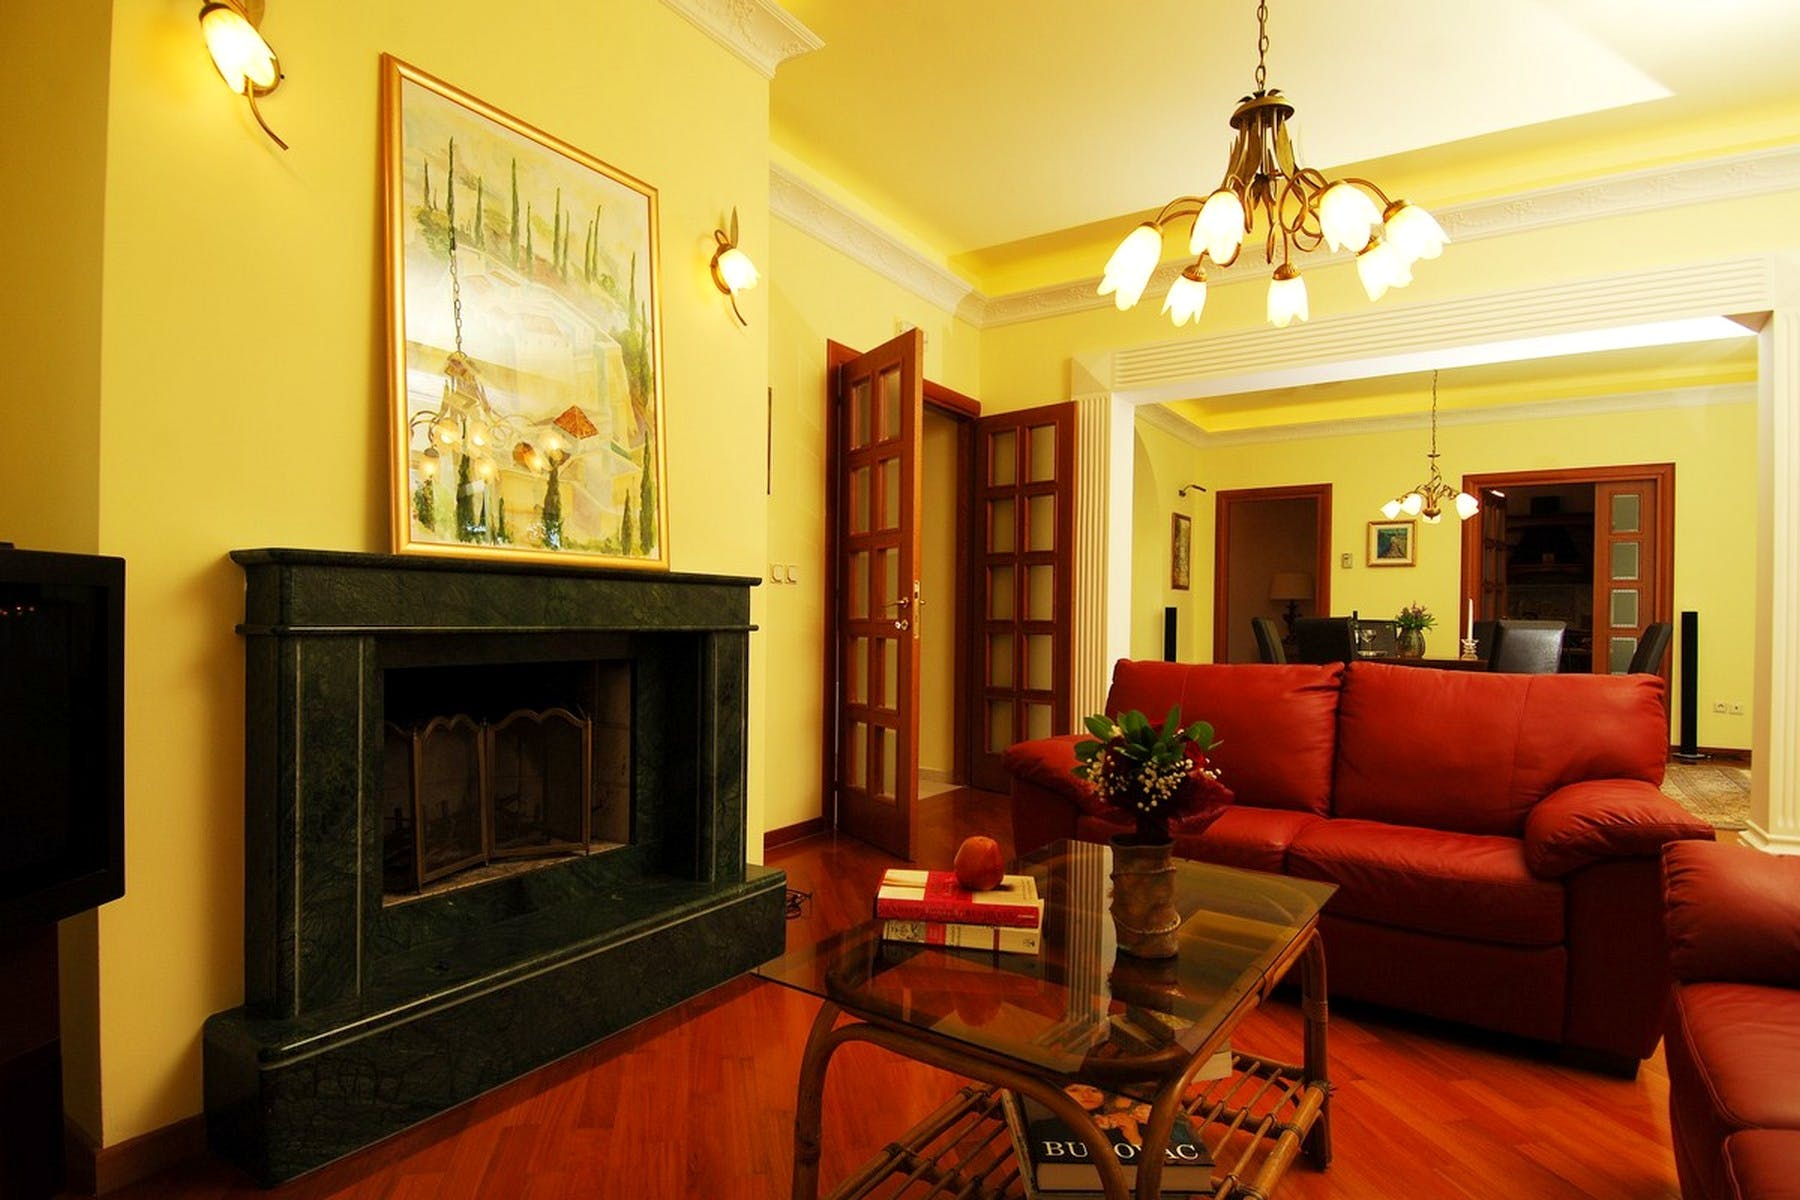 Fully furnished and equipped living area